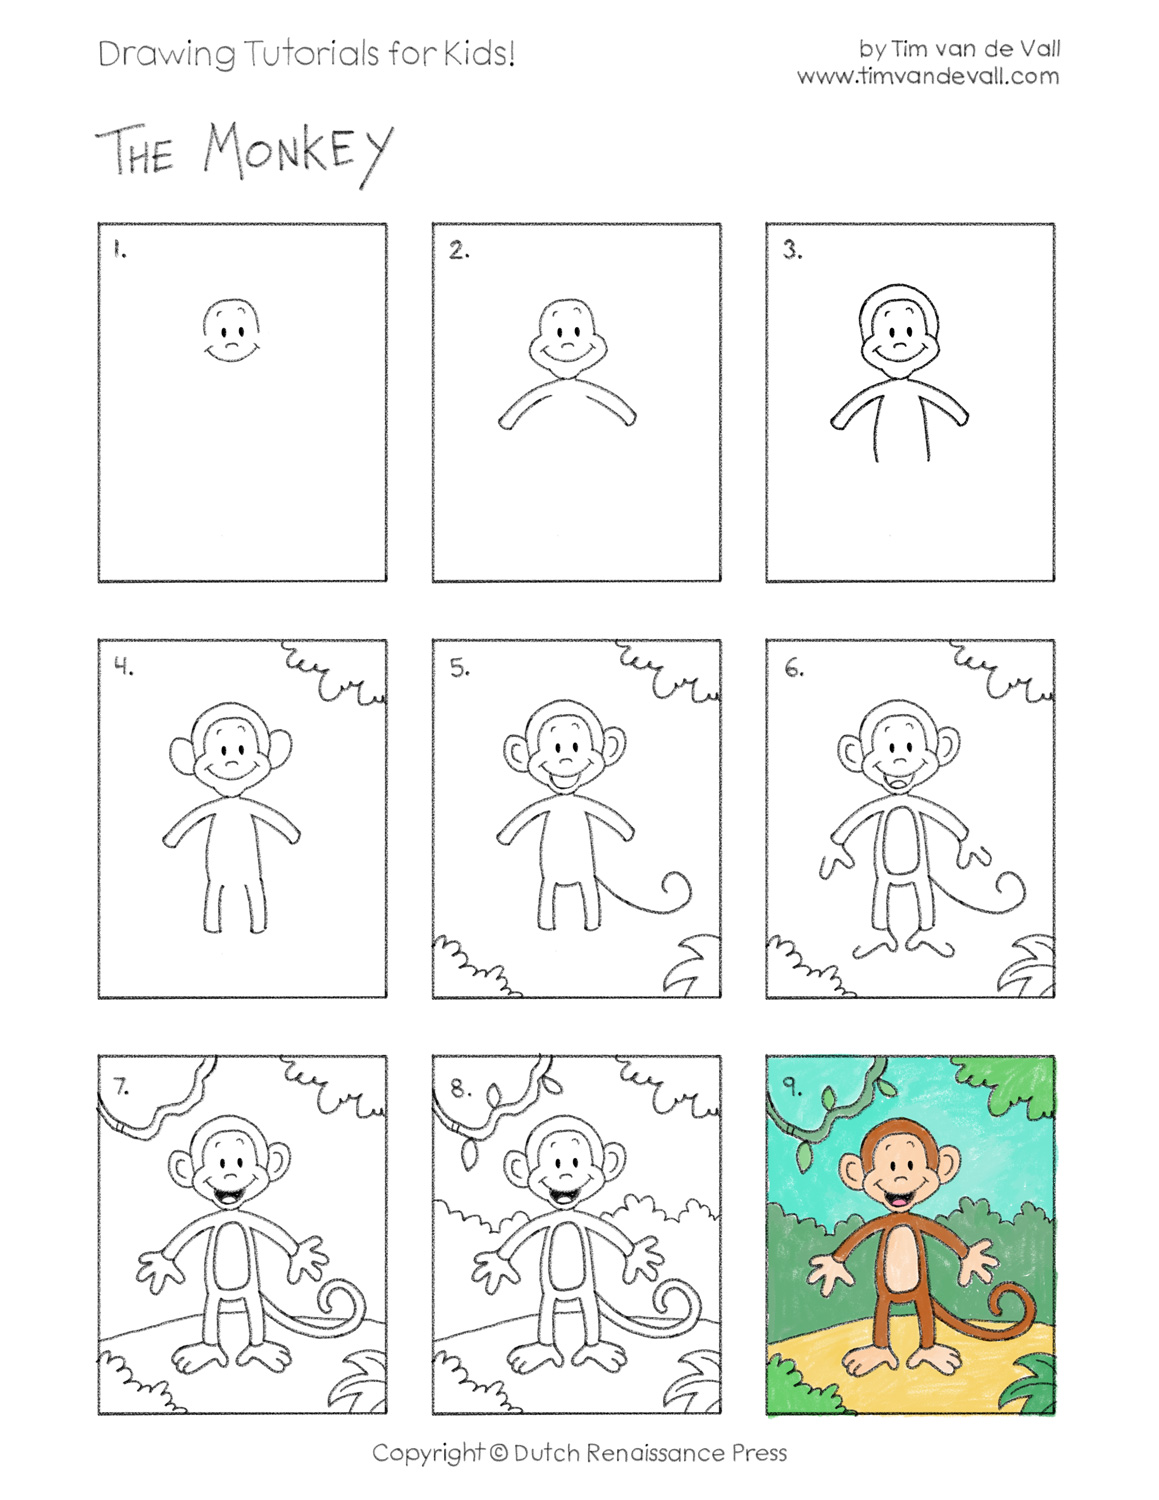 Easy Drawing Tutorials For Kids